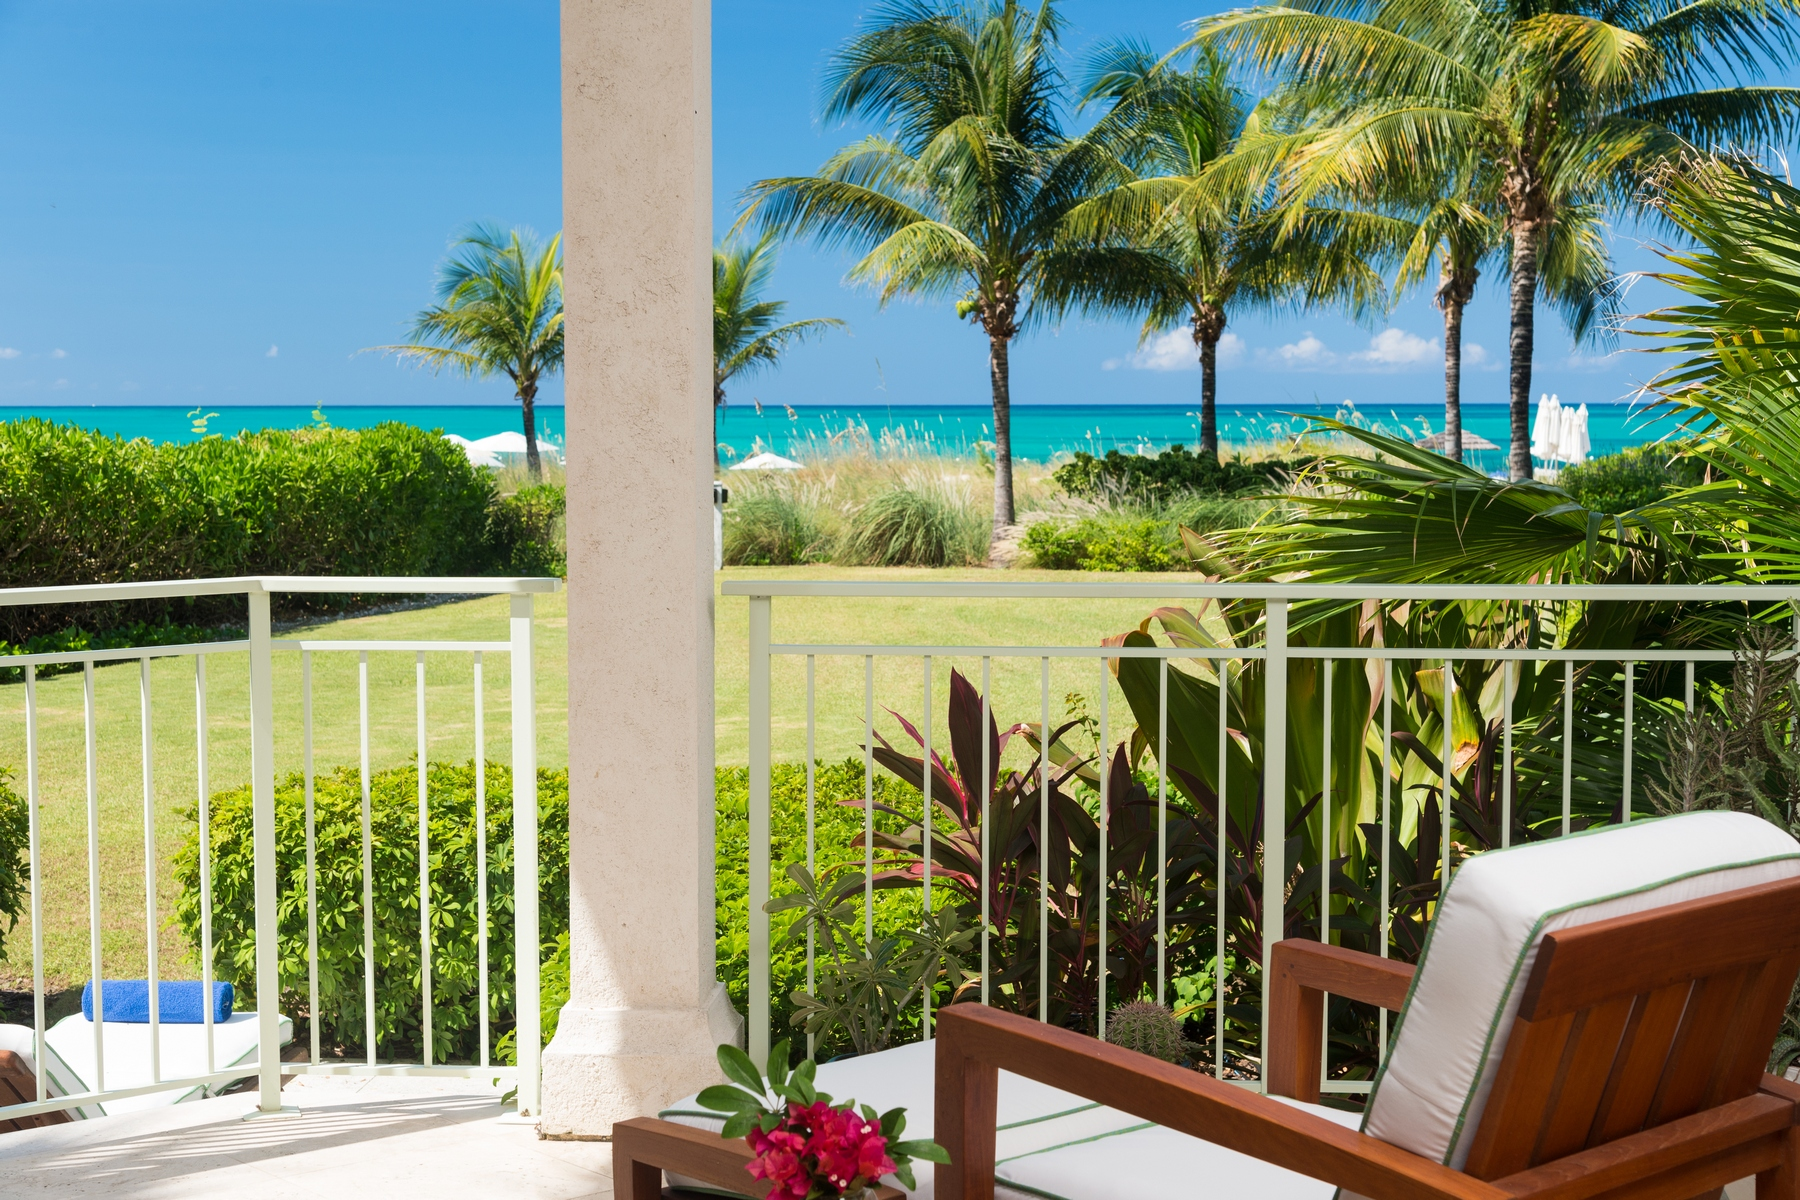 Condominium for Sale at West Bay Club - Suite 102 Beachfront Grace Bay, Providenciales TC Turks And Caicos Islands